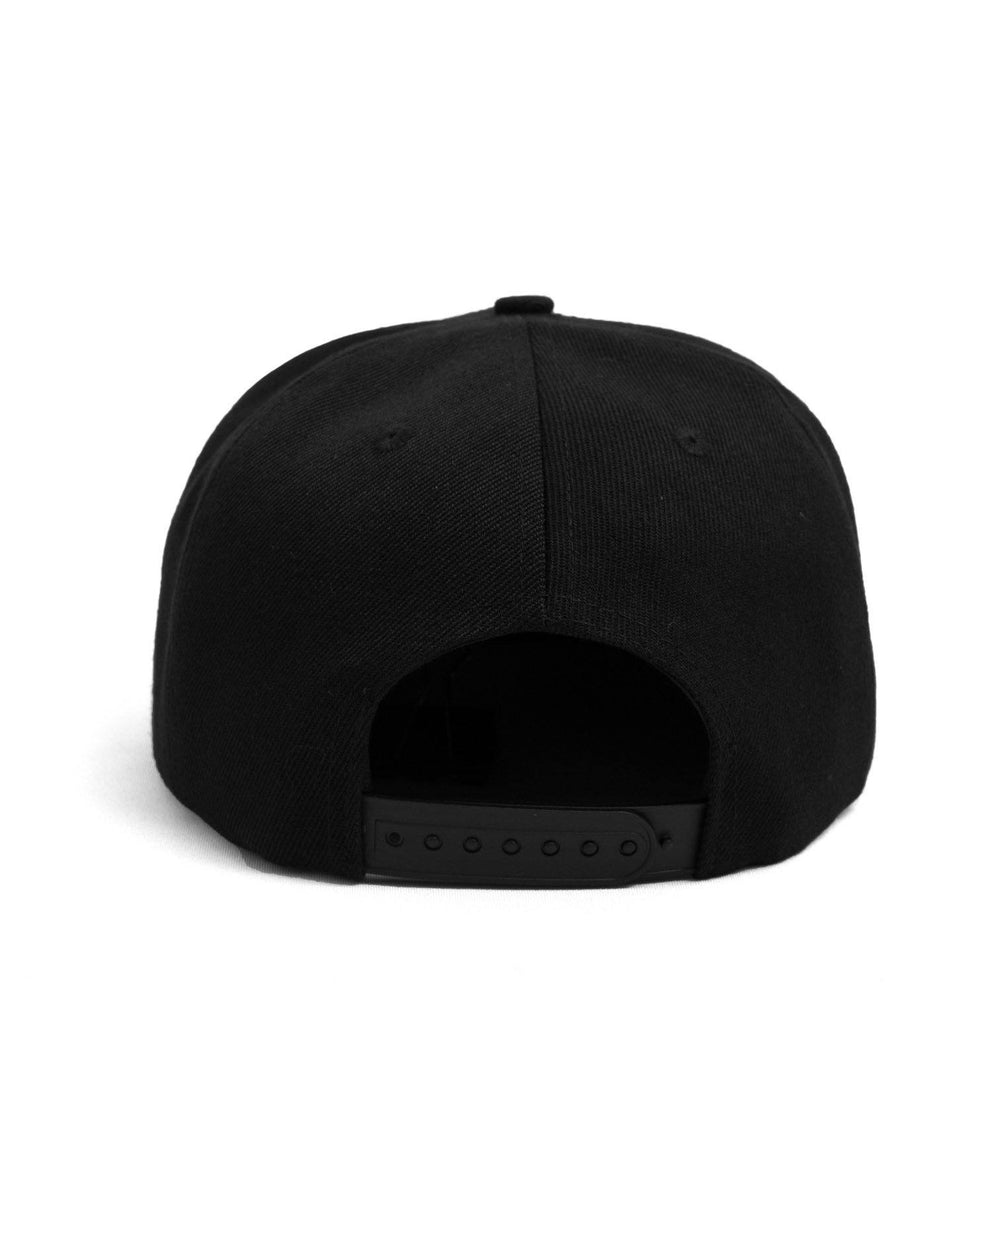 Excision 'Sliced' Snapback - Black/White